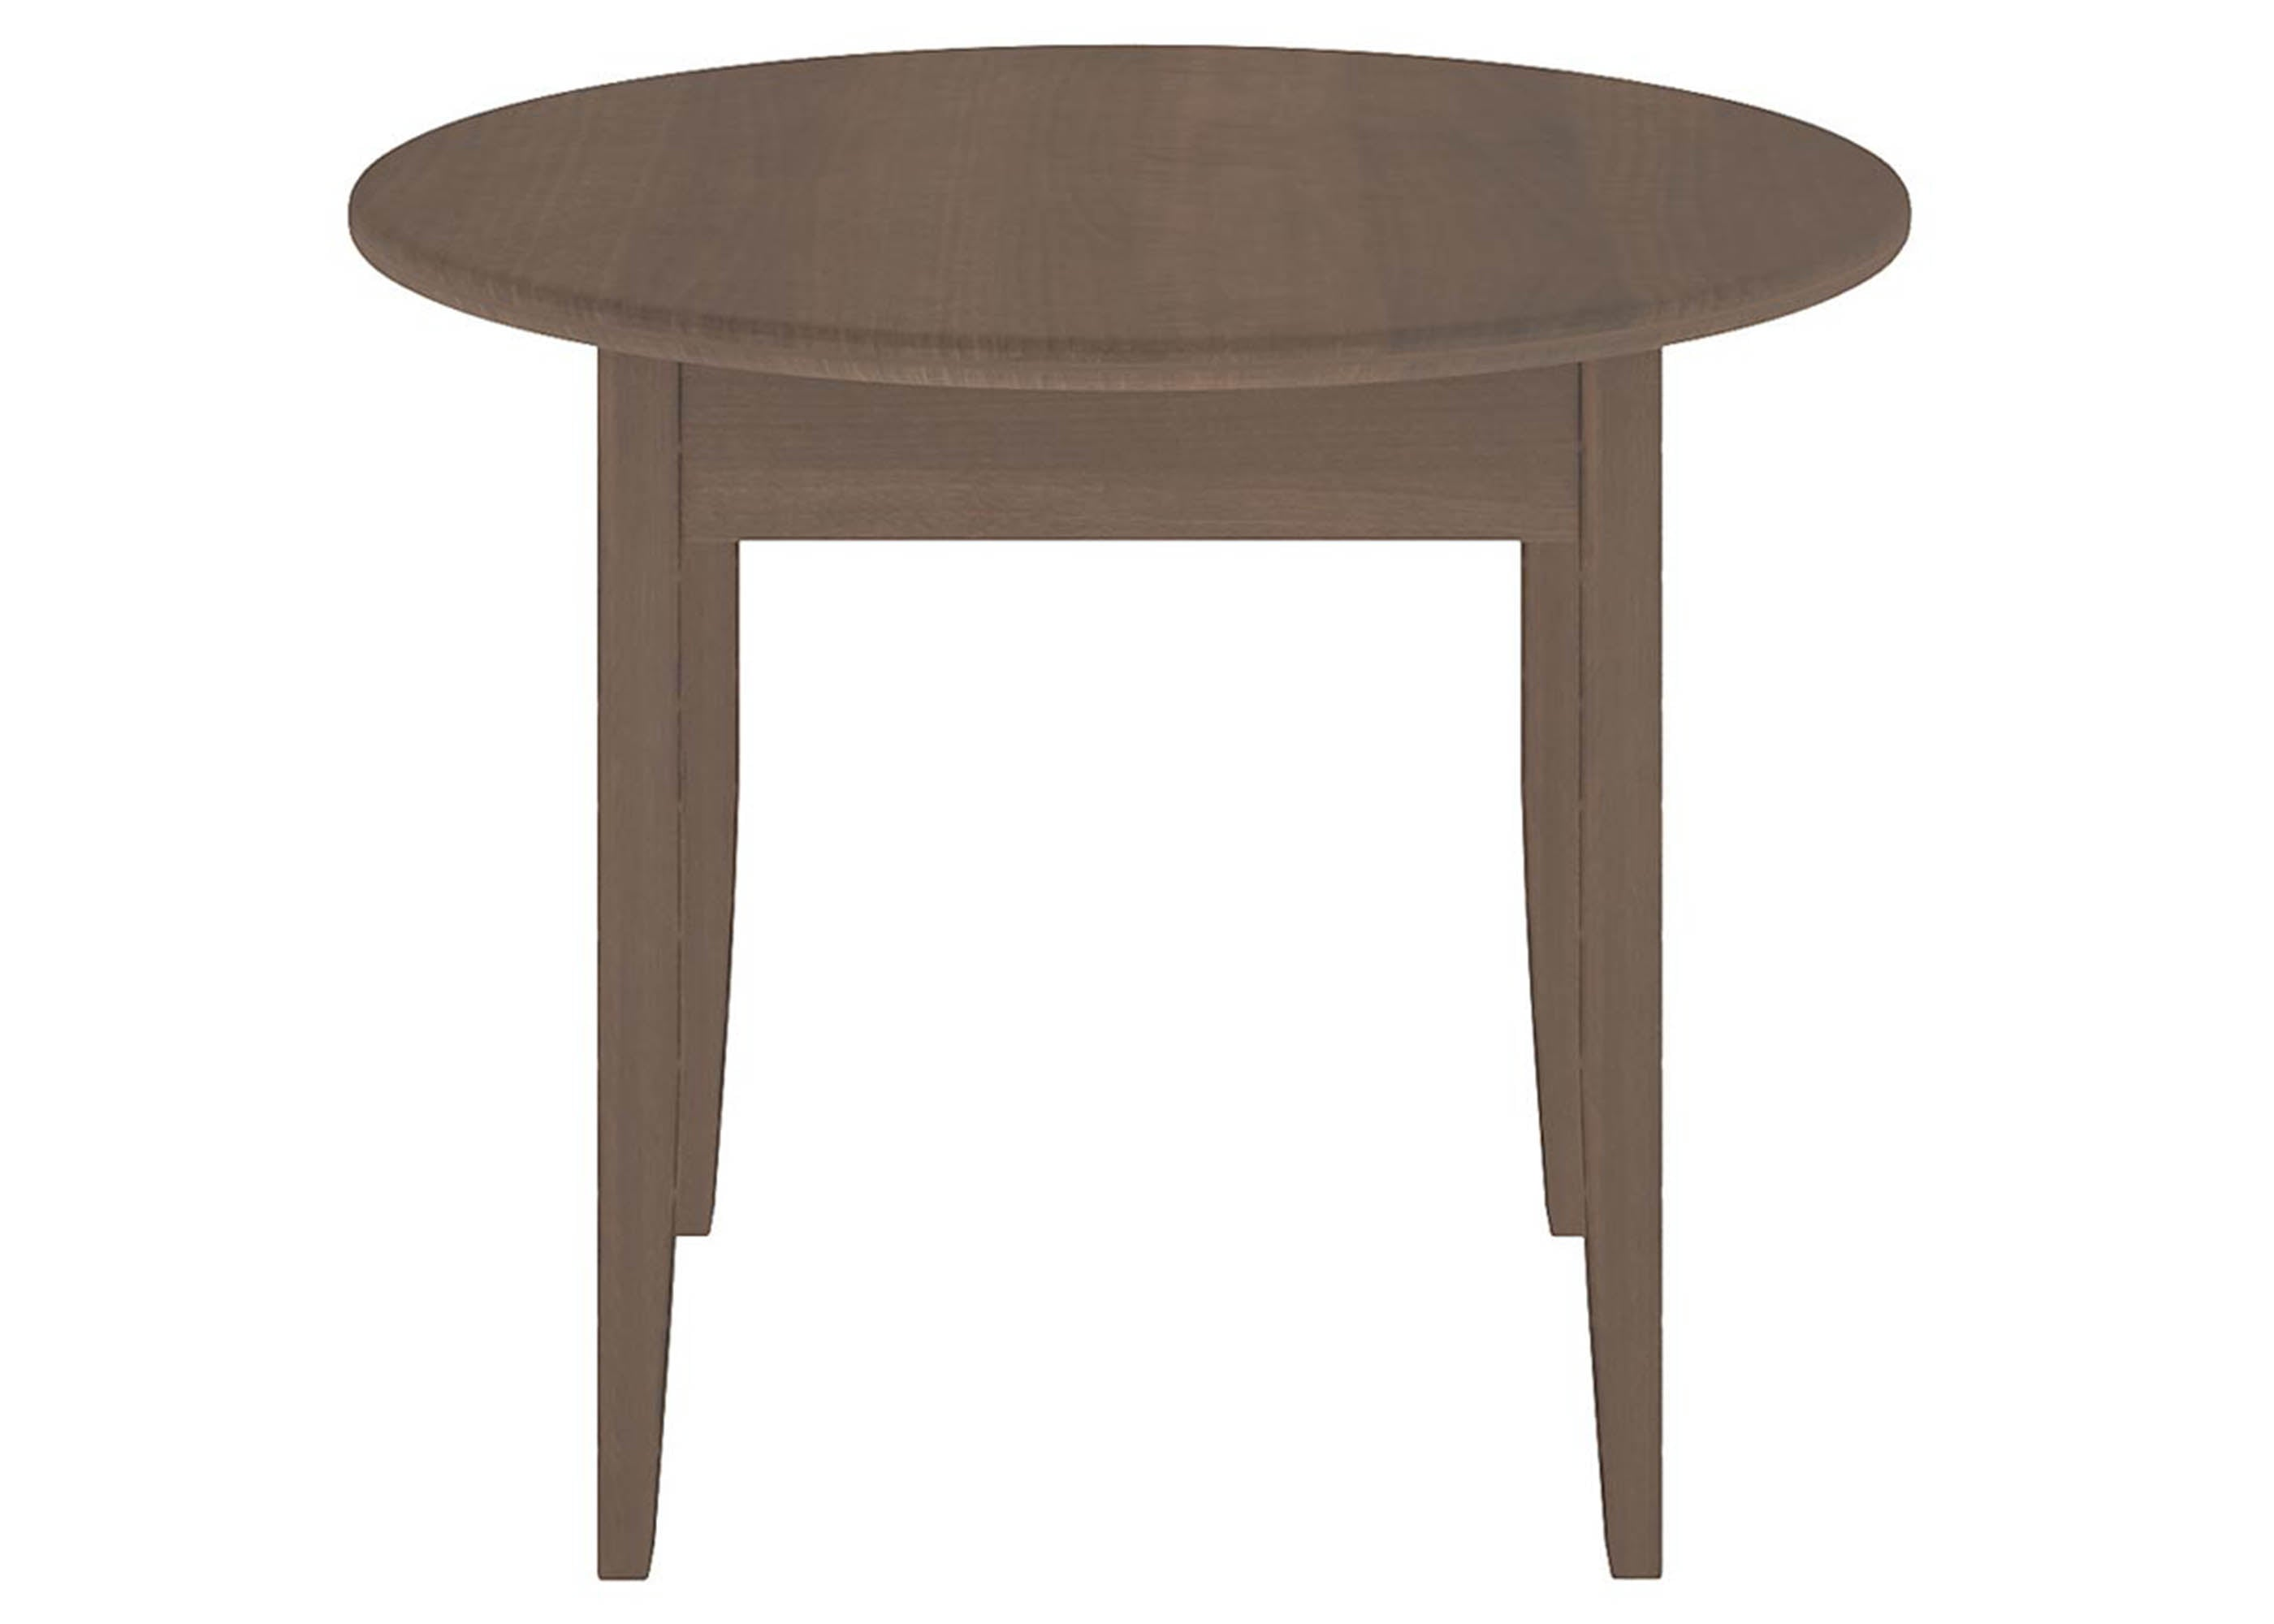 - Hotel Contract Lucerne Round Low Coffee Table Reinforced Beds